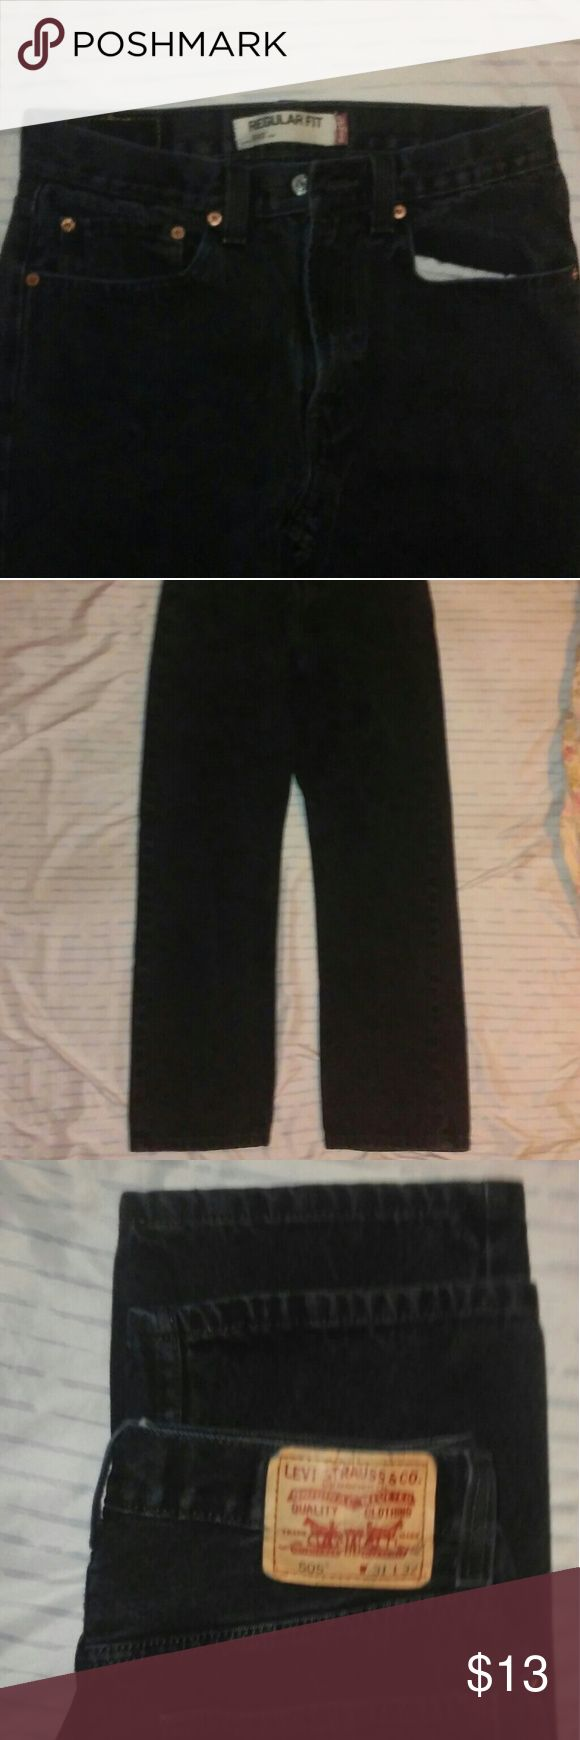 Levi's 505 Regular Fit Size 31 Black Jeans! The length is 32. They are in good condition. Pictures show. Cheap priced. Levi's Jeans Straight